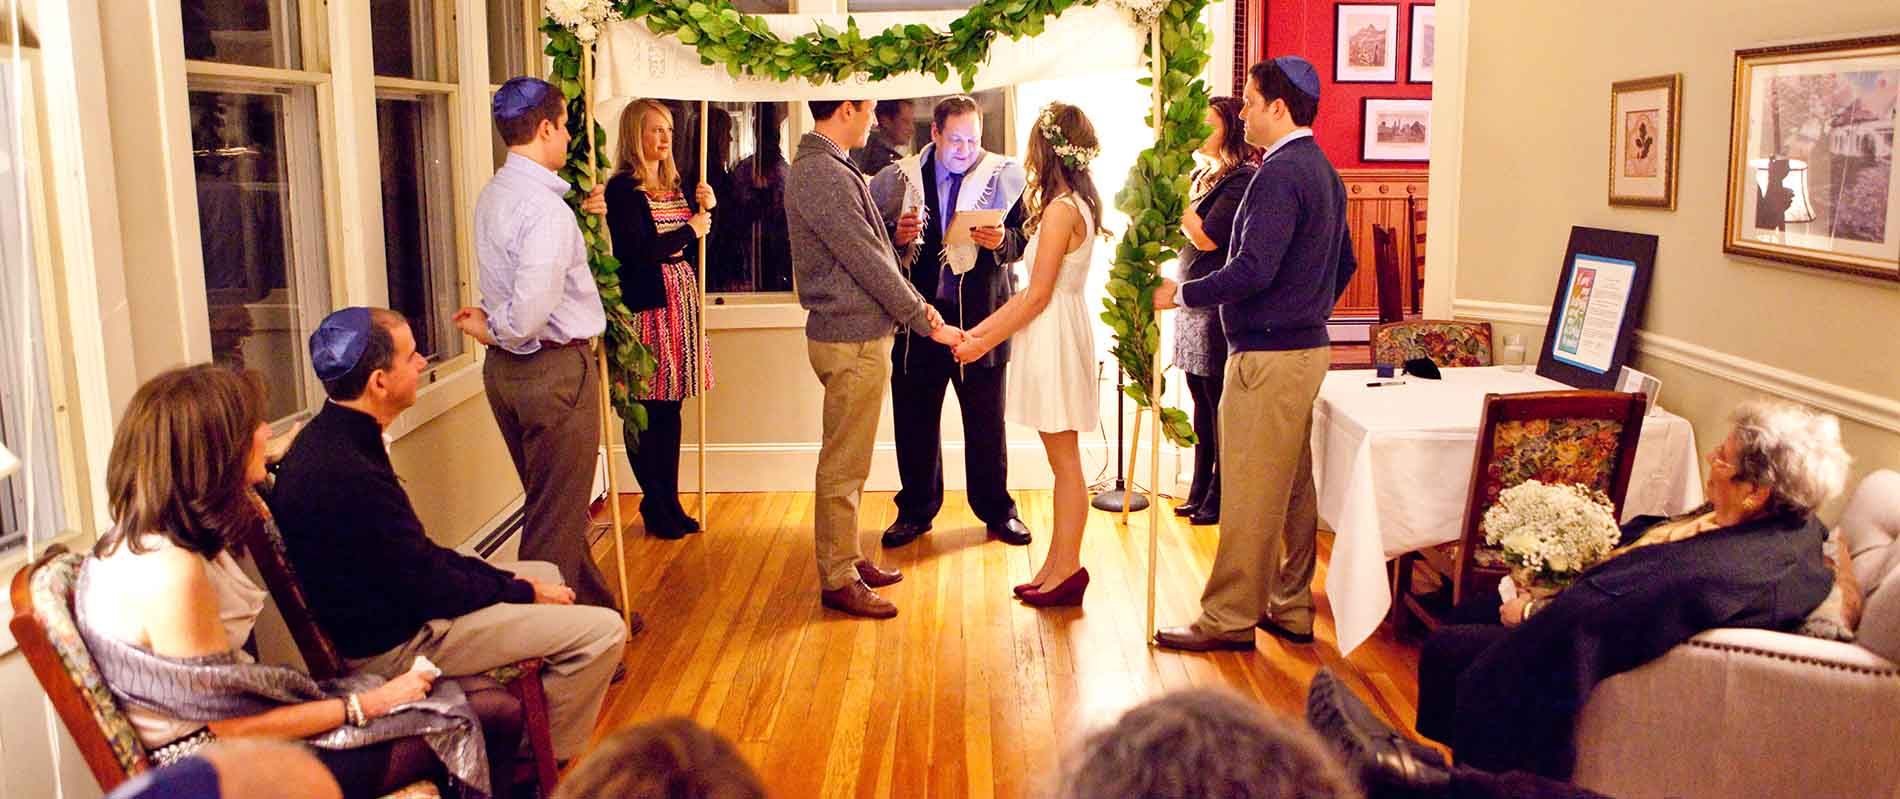 Burlington Vermont Wedding Venues & Elopements :: Small & Magical